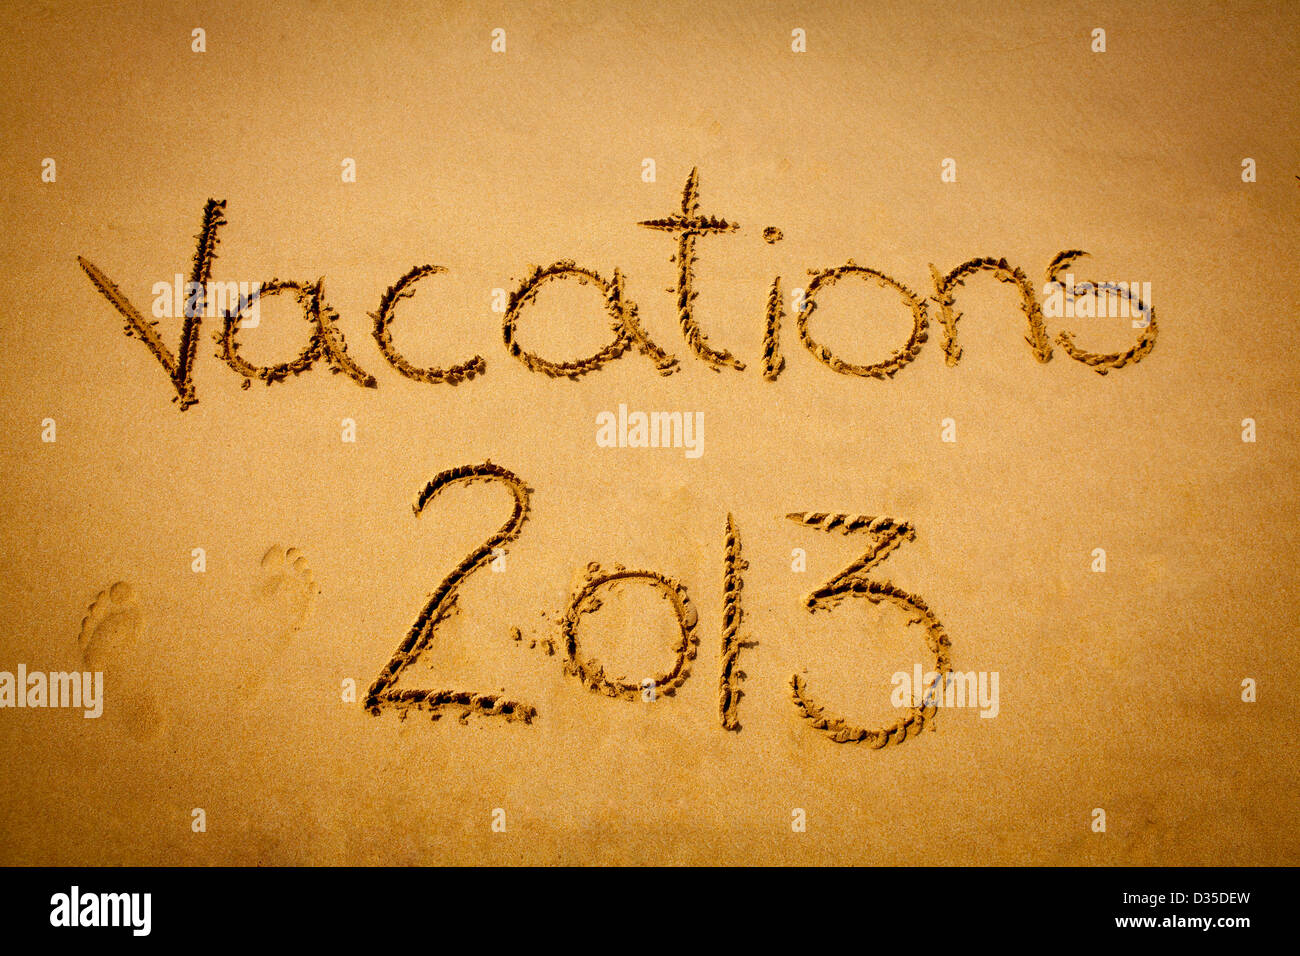 Vacations 2013 written on sand - tropical beach - Stock Image